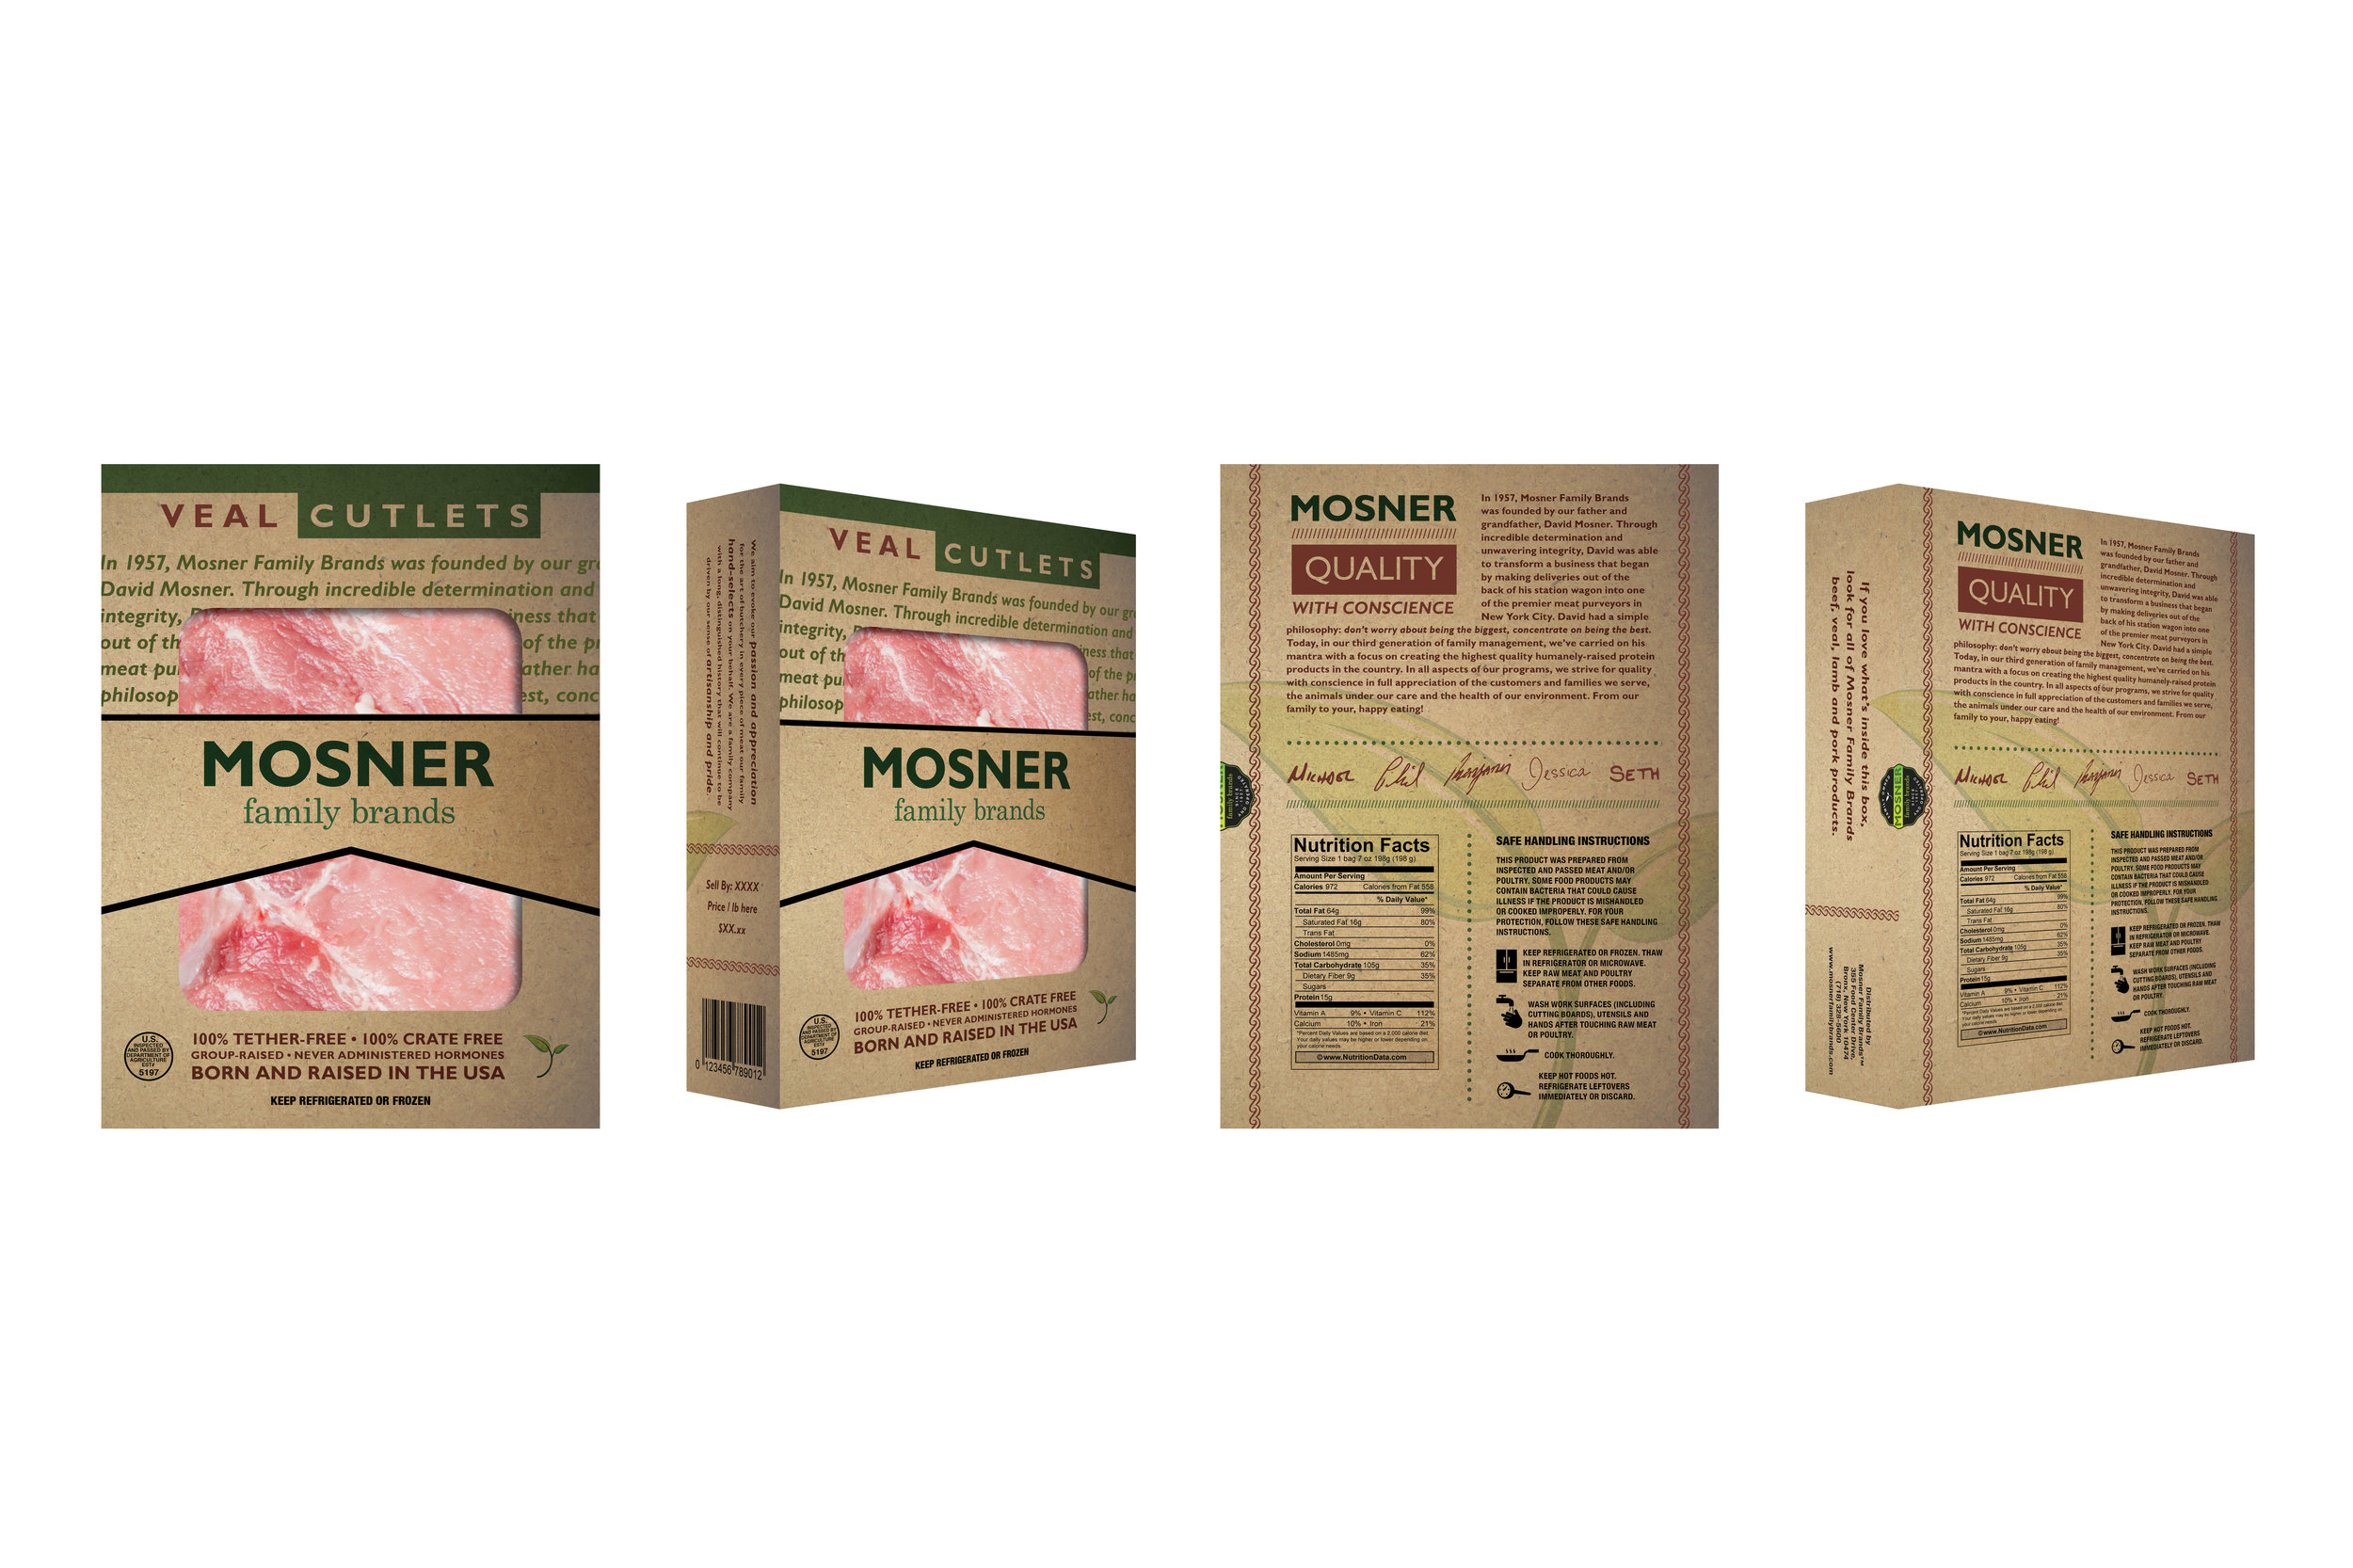 mosner_veal_packaging_large.jpg